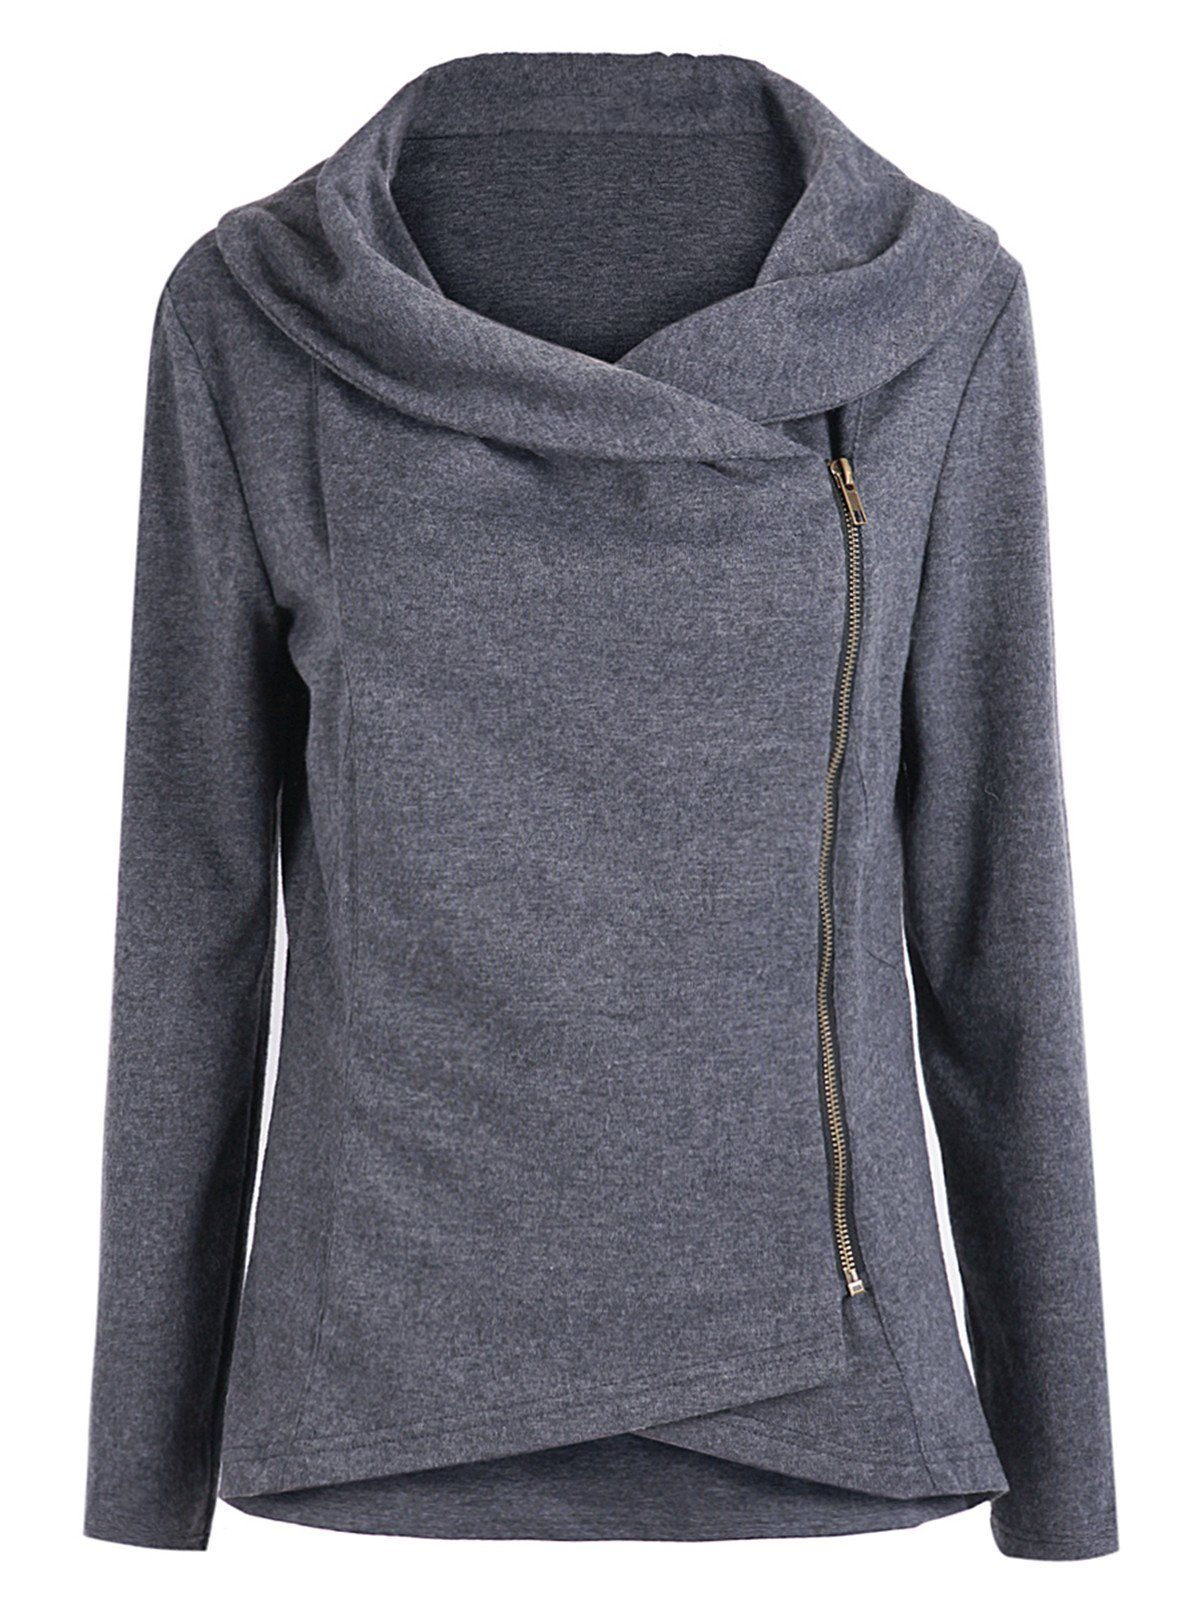 Grey At Dark Sleeve Long Zip Women's Asymmetric Outerwear Sheinside® E8RUOxqw